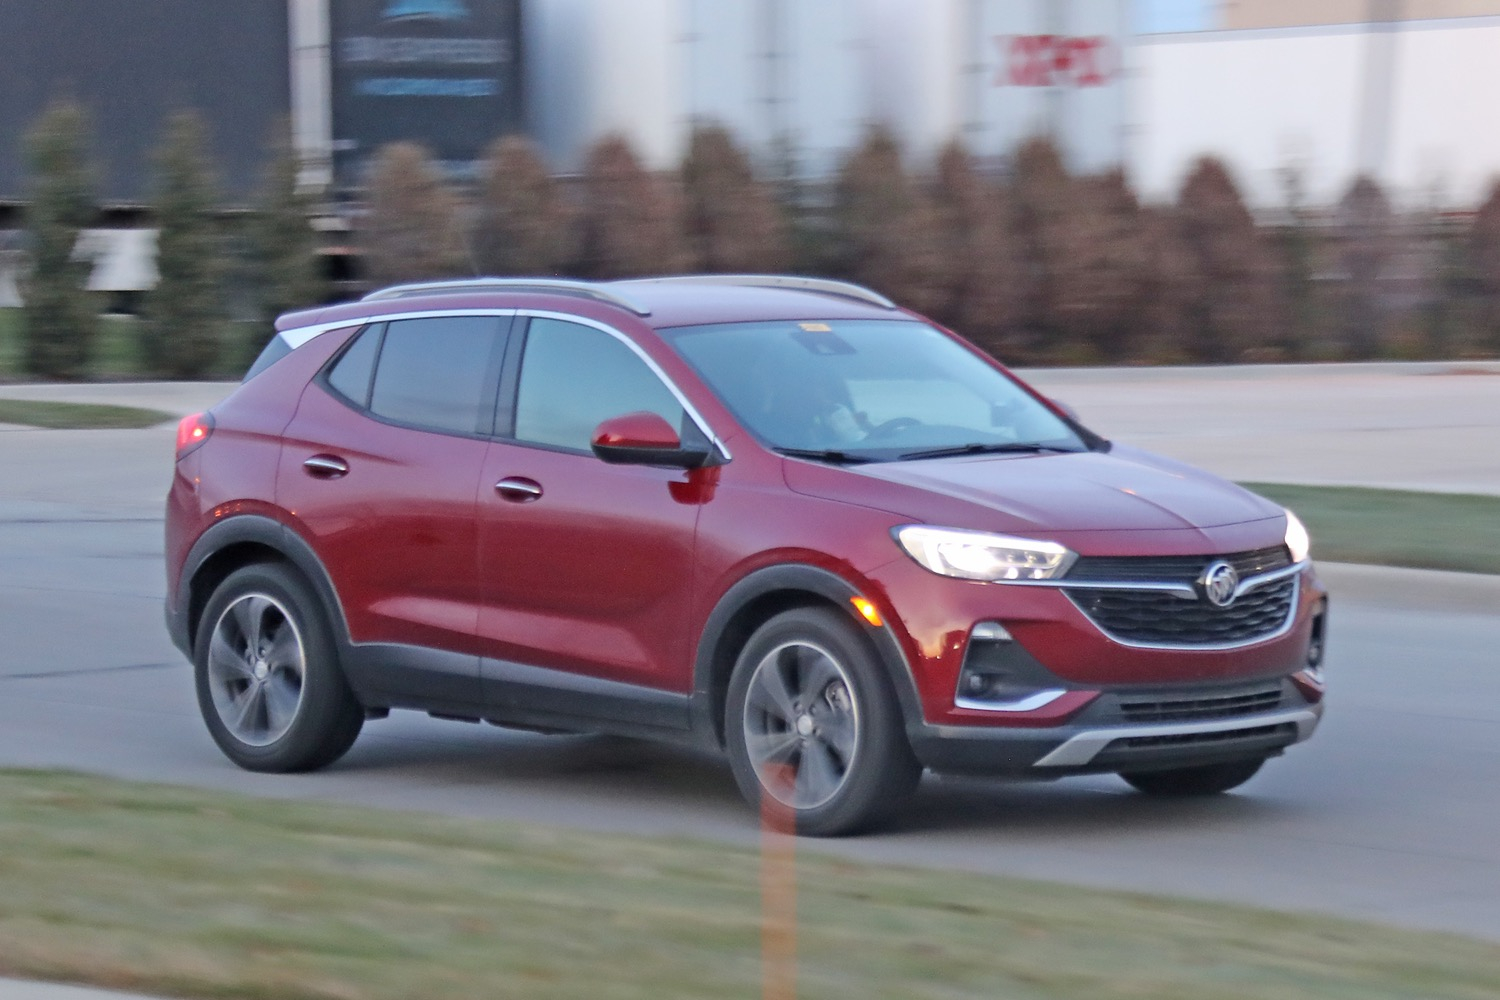 2021 Buick Encore Gx Isn't Getting New Fascias After All New 2021 Buick Encore Used, Updates, Wheels